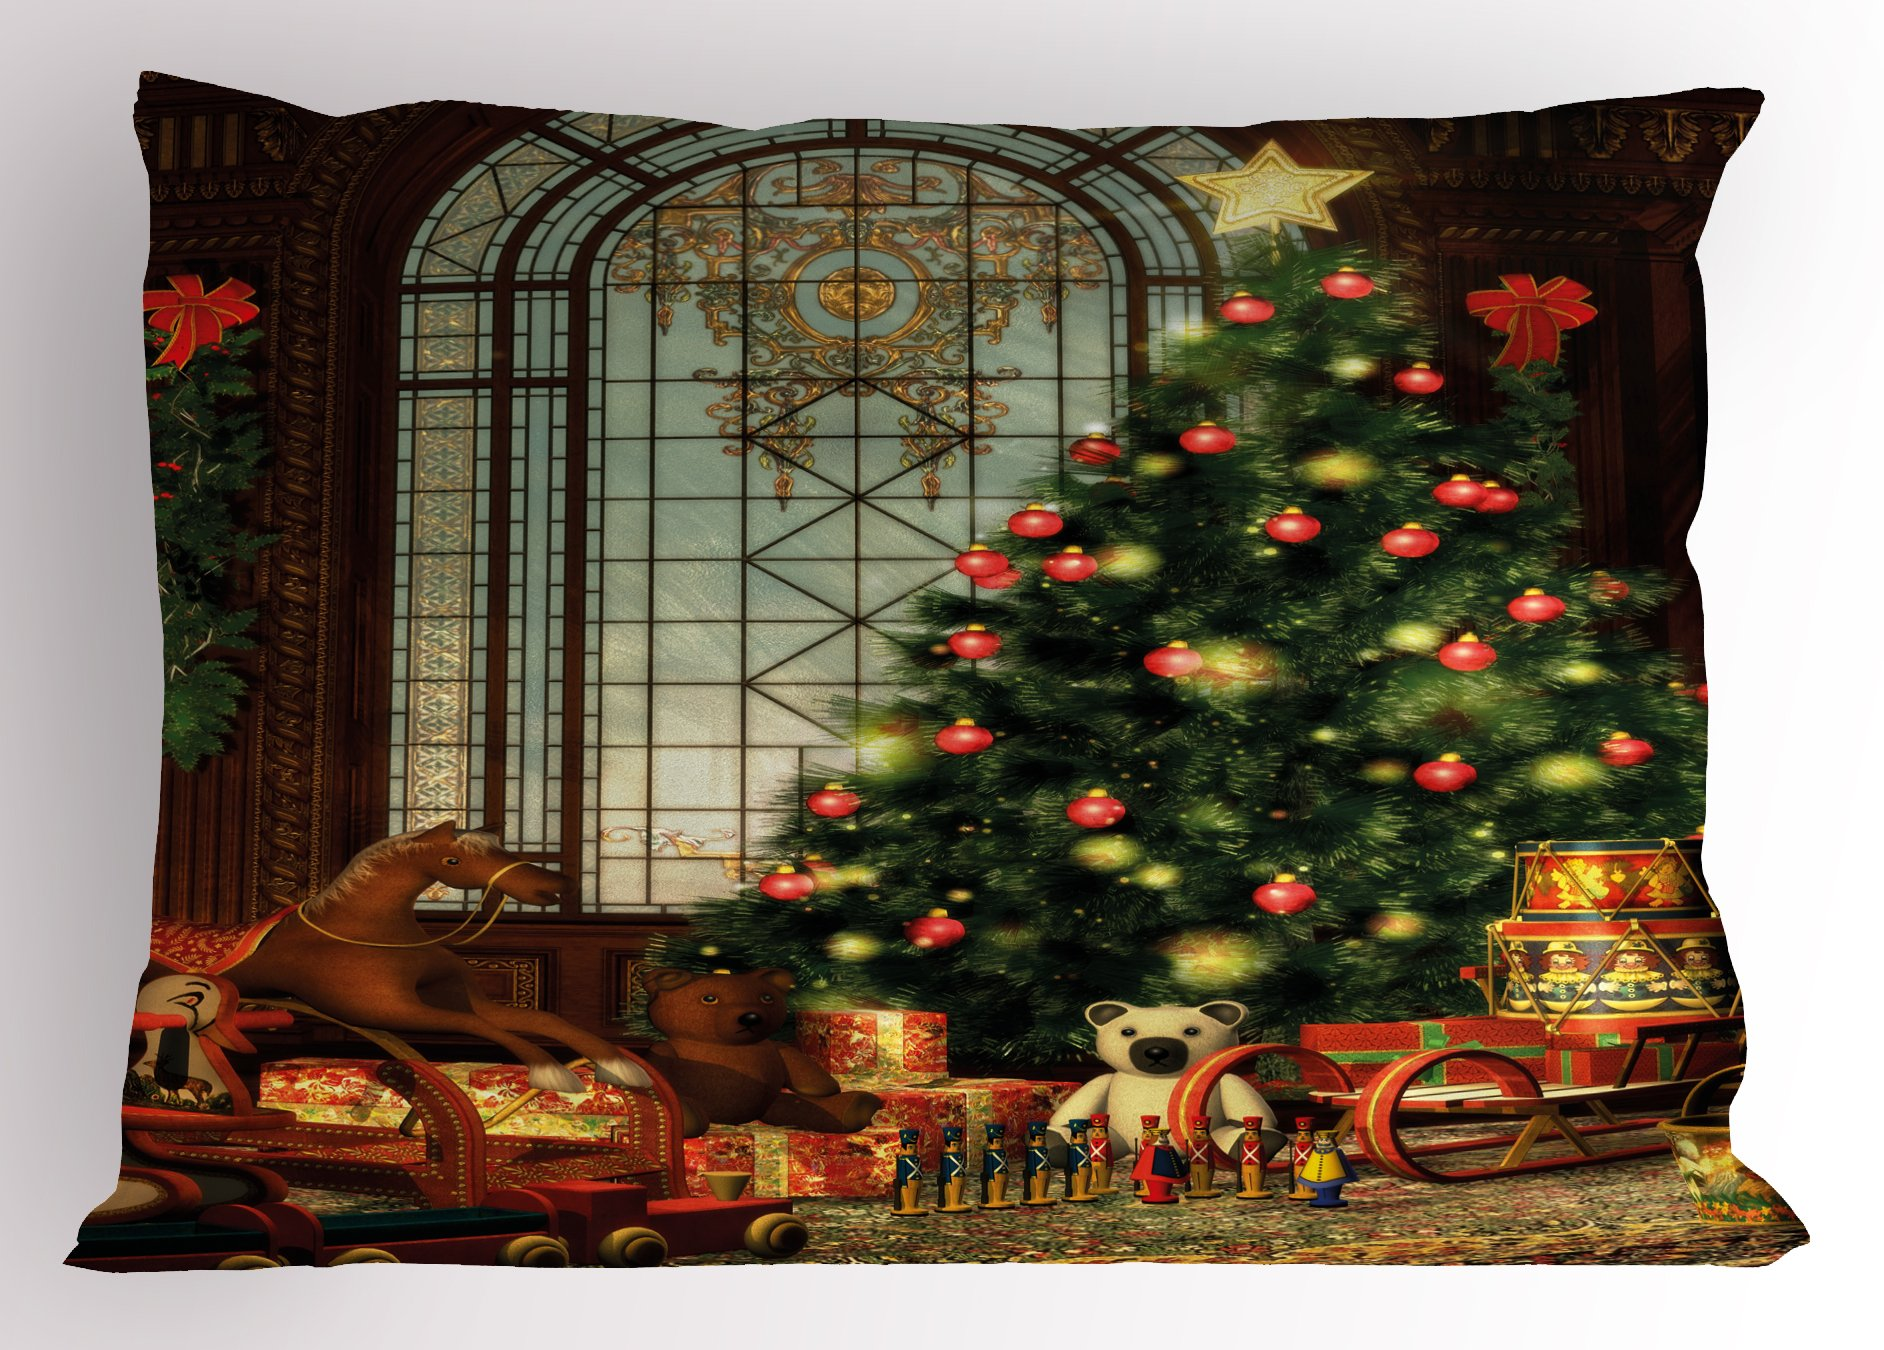 Ambesonne Christmas Pillow Sham, Magical Vintage Ambiance Big Old Fashioned Window Xmas Tree Various Presents, Decorative Standard Size Printed Pillowcase, 26 X 20 inches, Brown Red Green